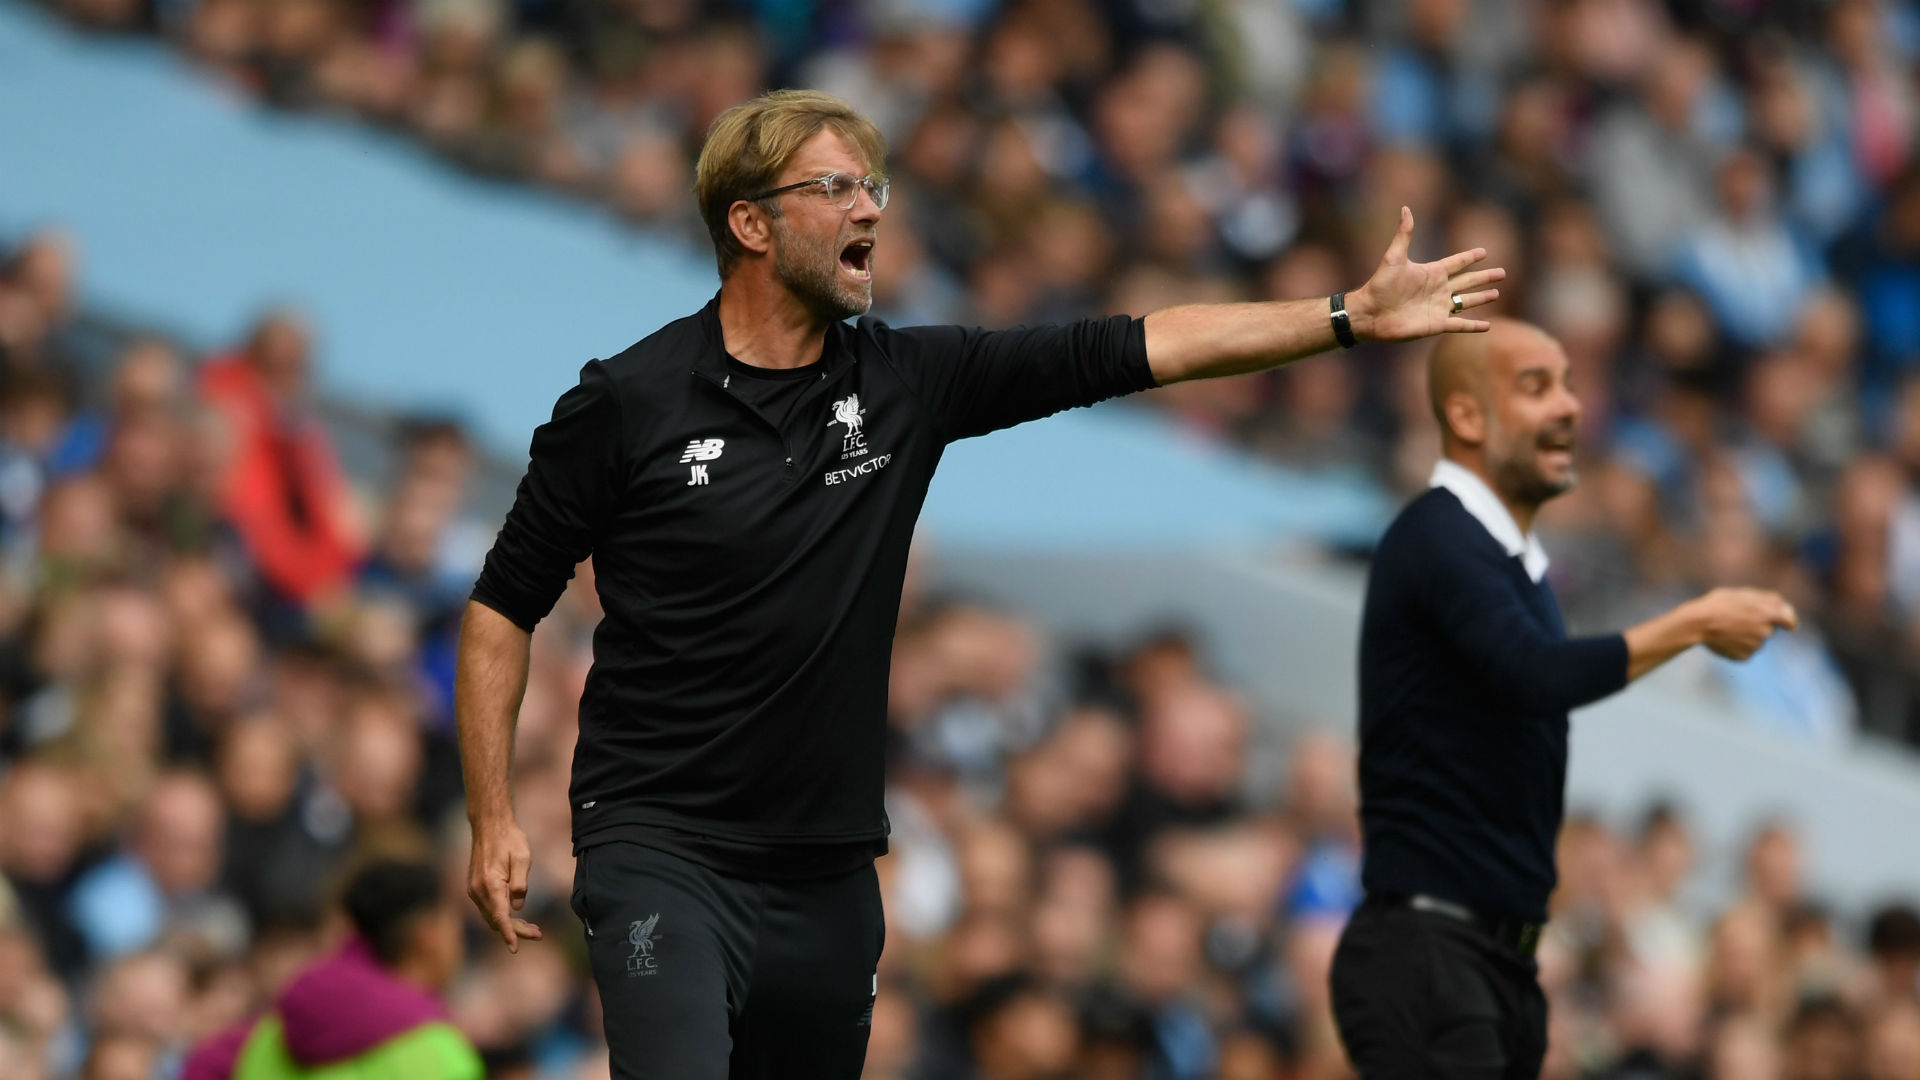 Former Newcastle Star Slams Klopp for Starting Klavan Against Man City